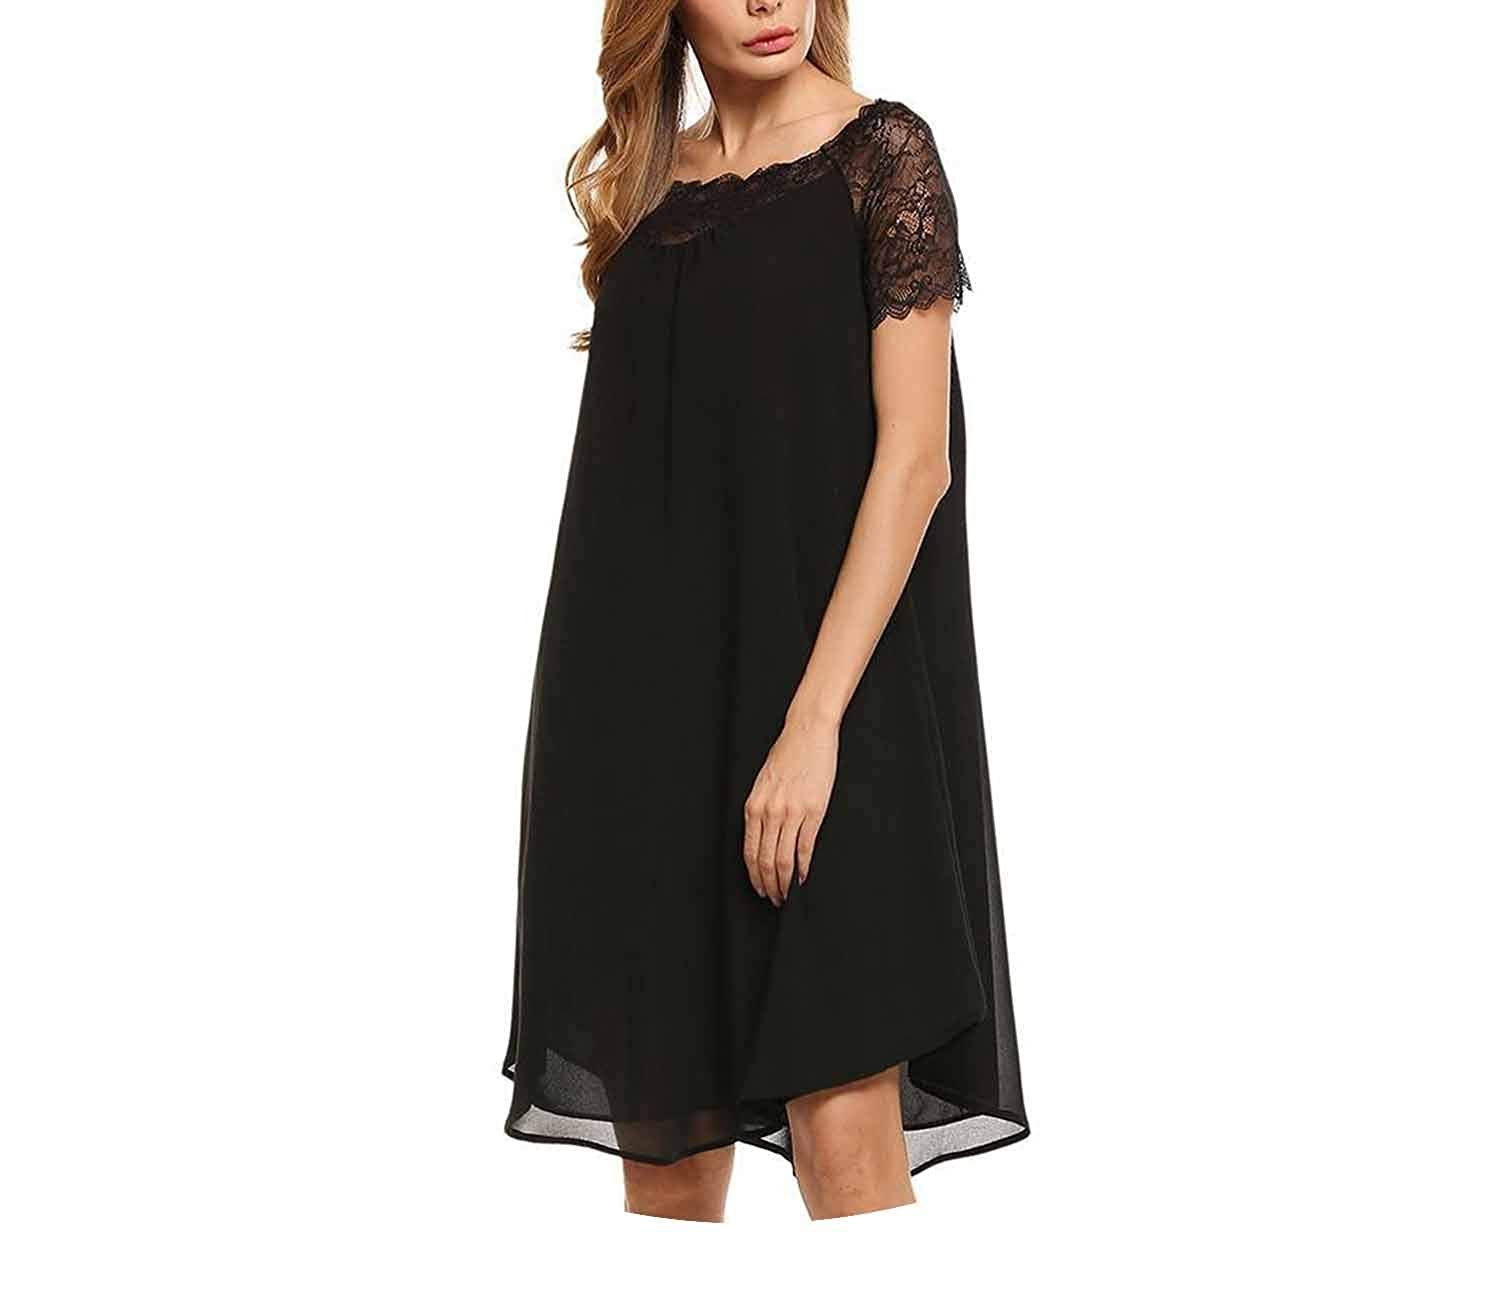 Casual Sleeve Lace Patchwork Pullover Chiffon Dress Robe Vestidos,White,S,Uted States